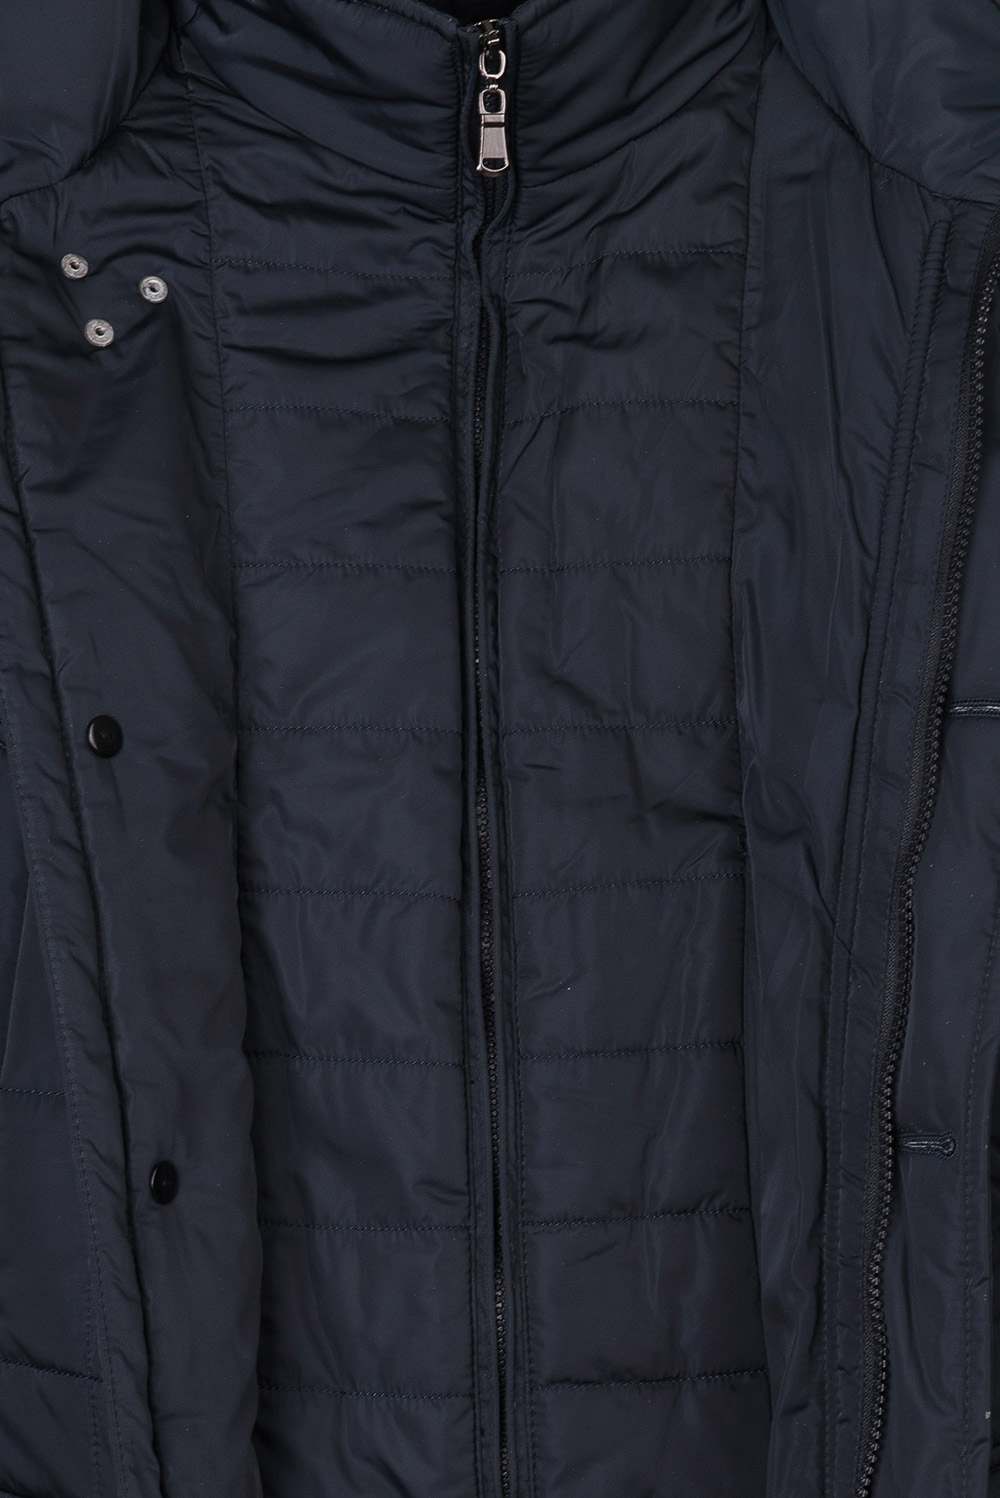 Navy Plain Jacket 5